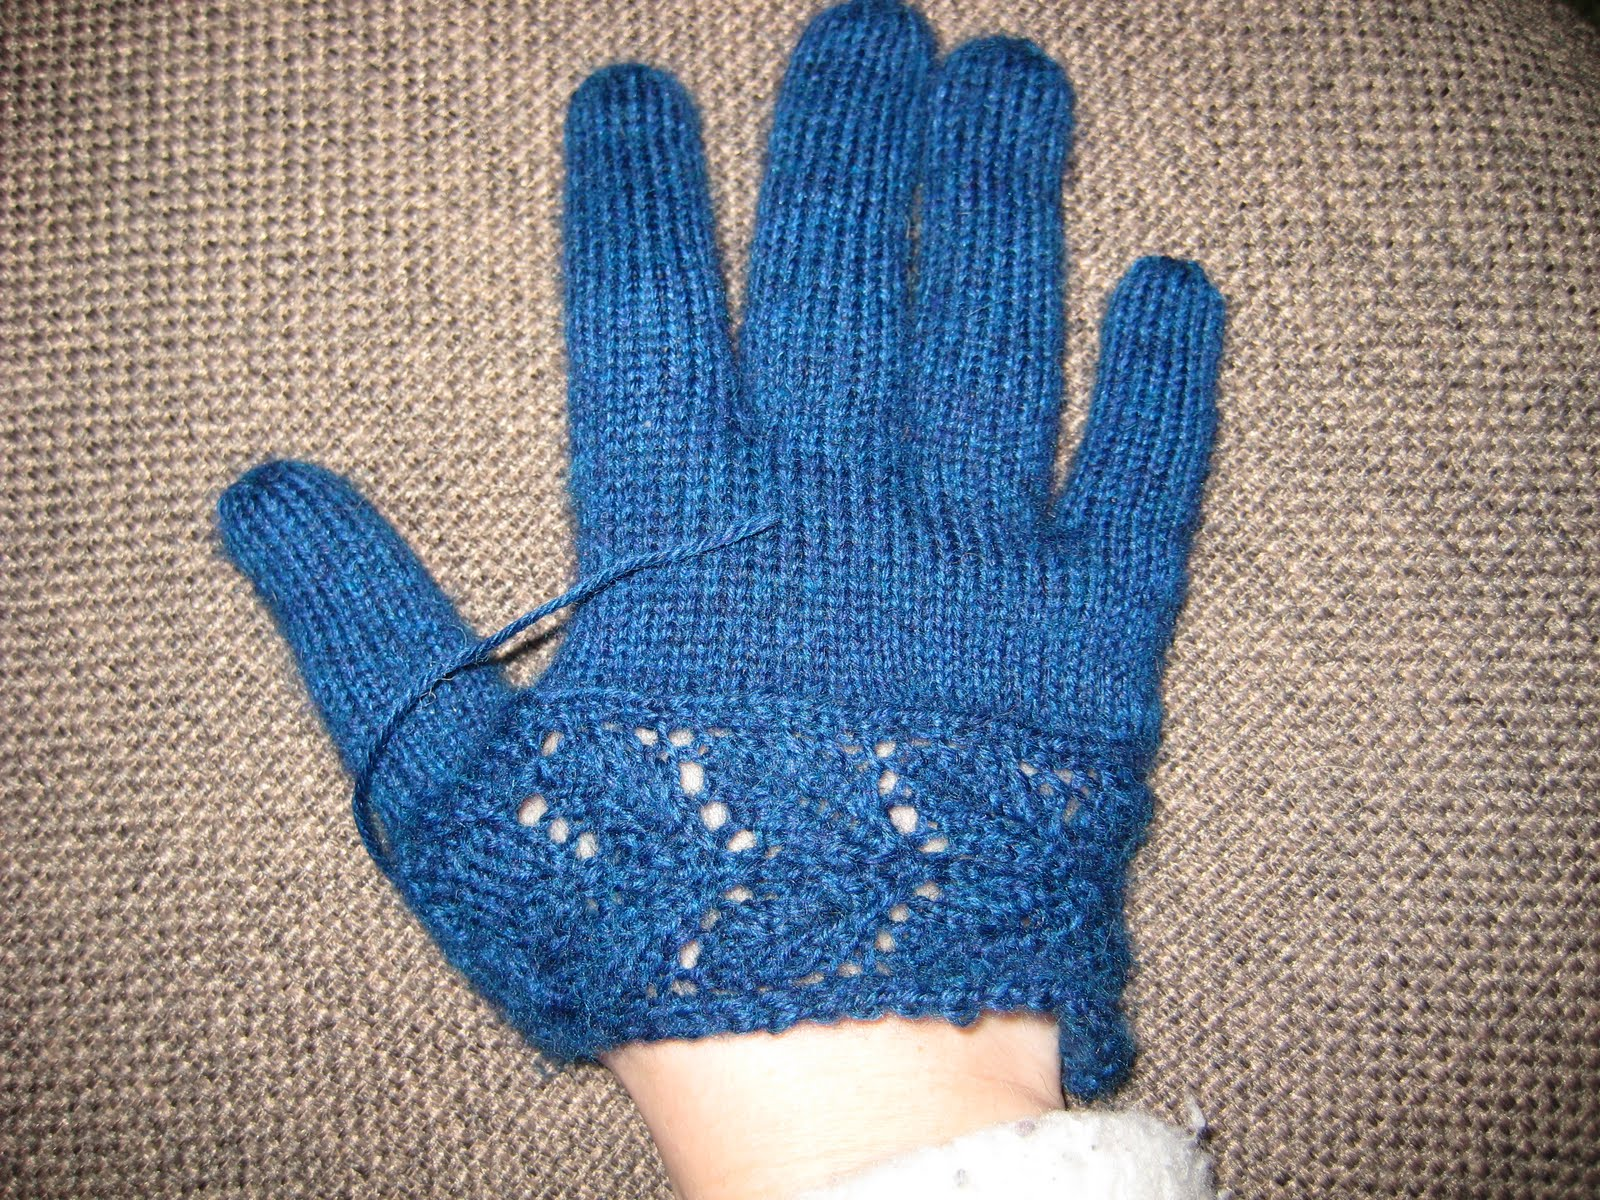 Jennys blog on knitting: (Summer) Home Owners!